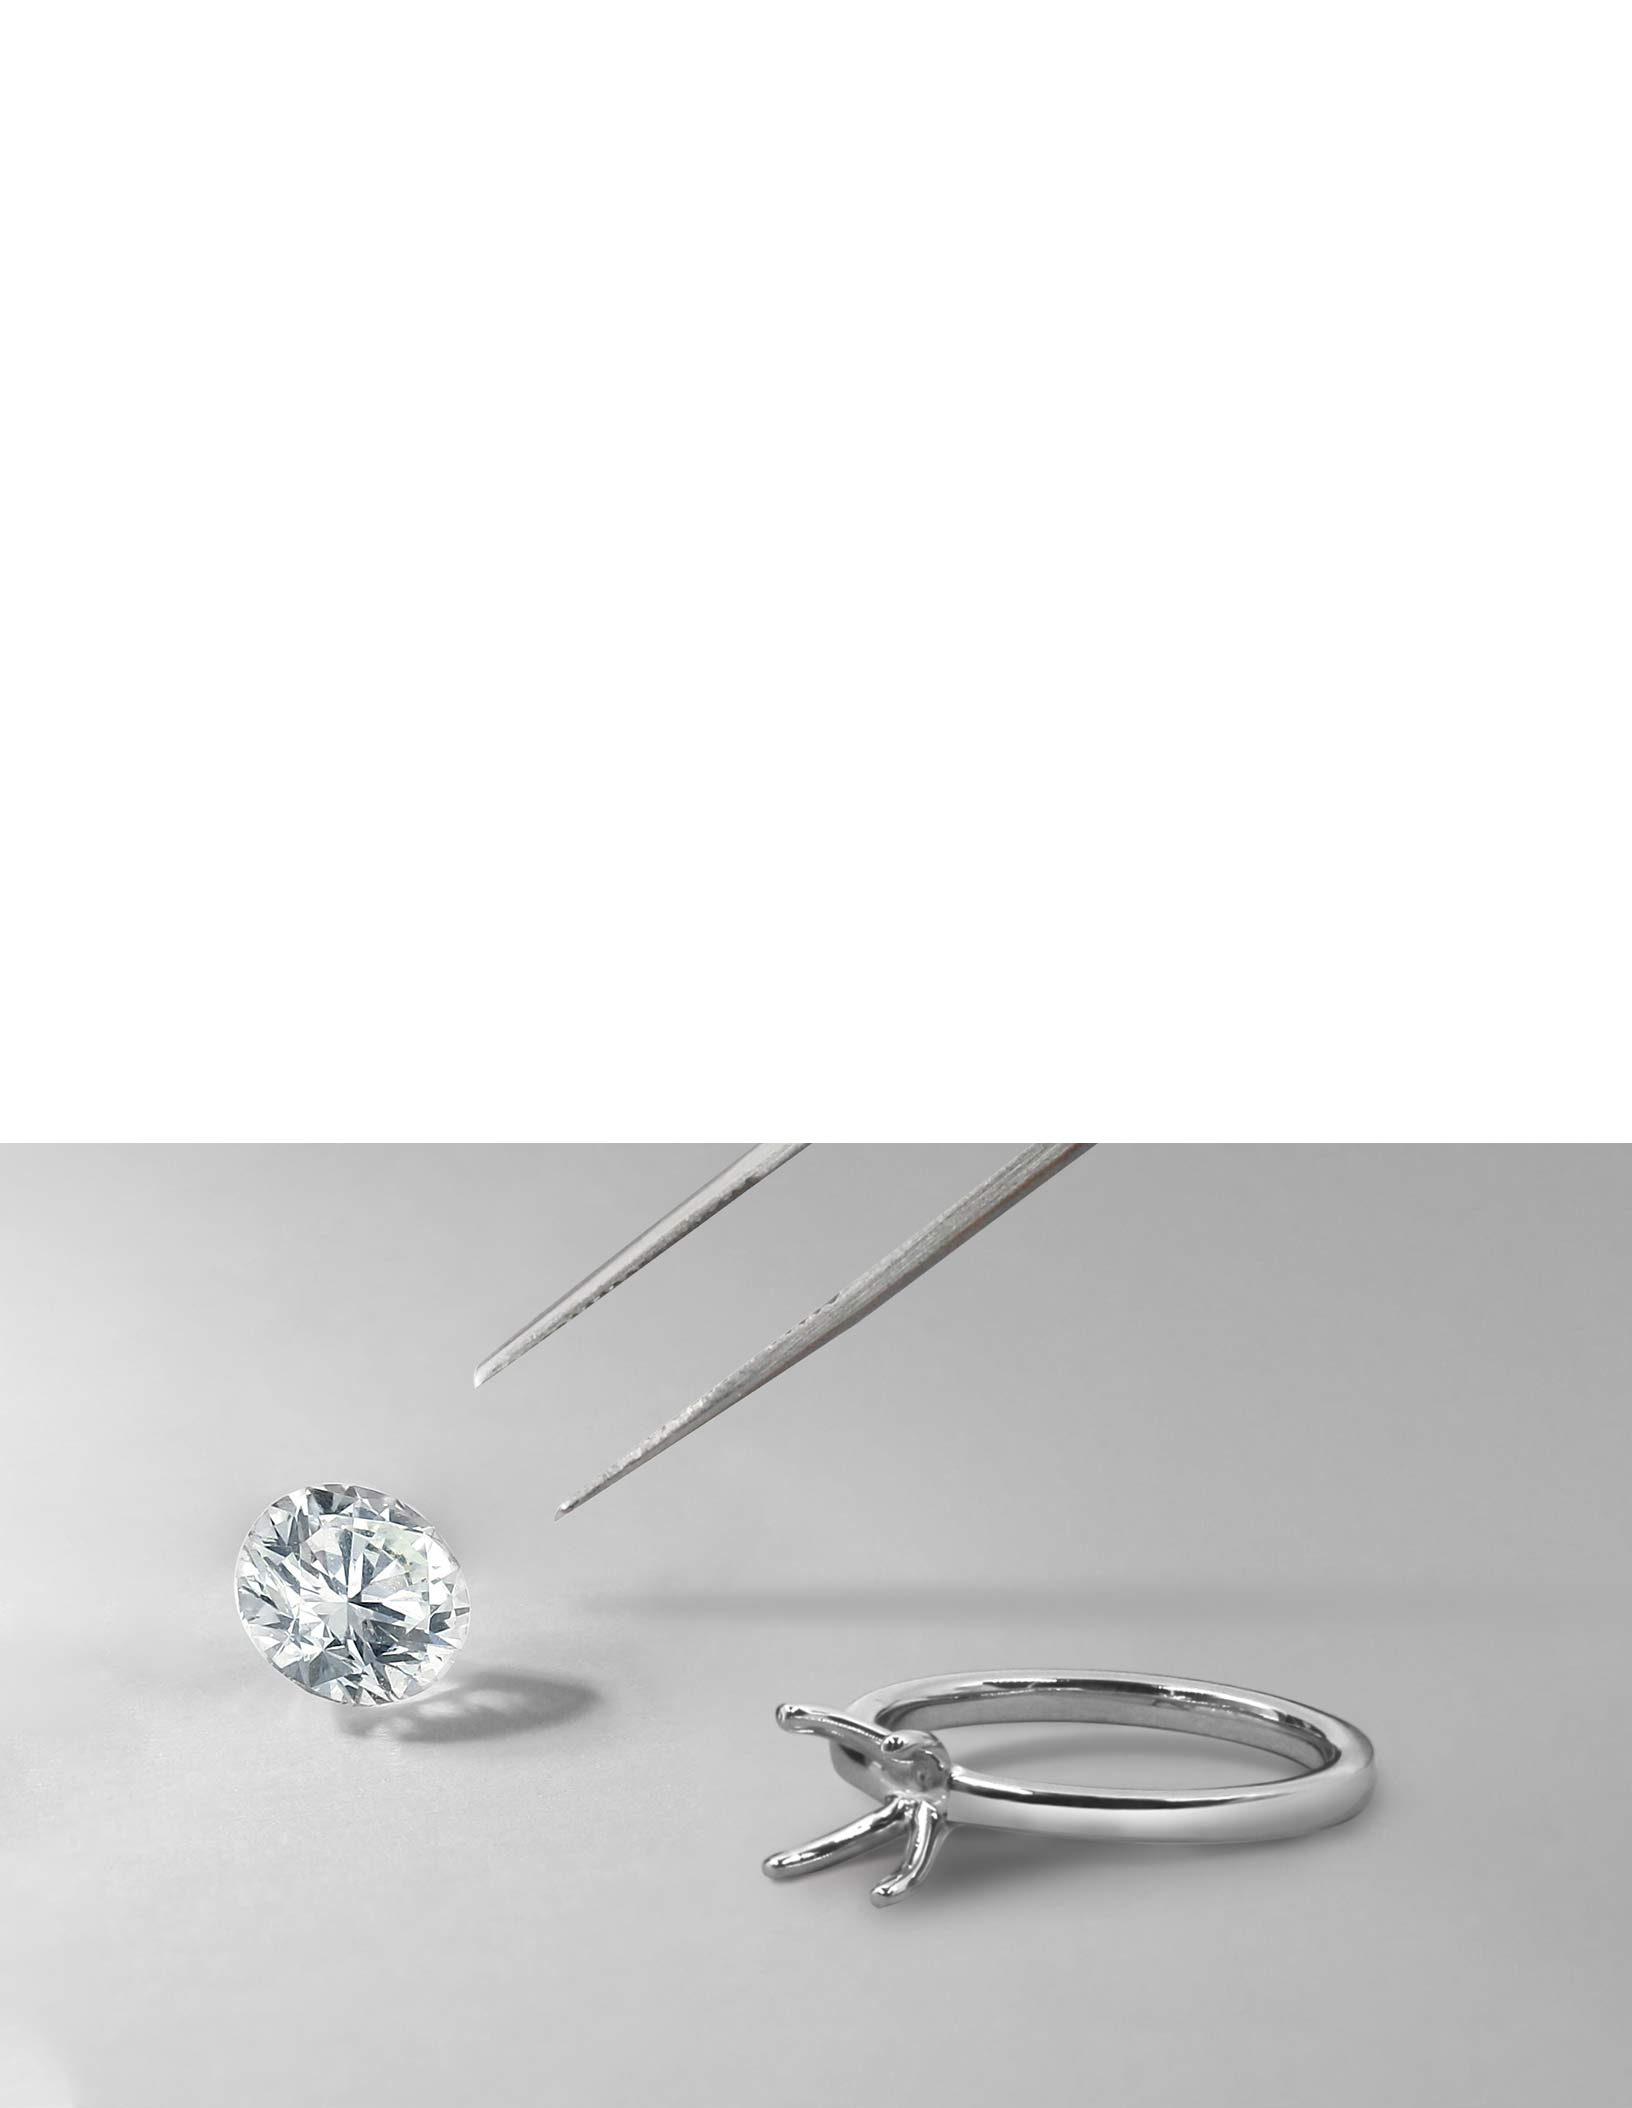 Oval Shape Solitaire Engagement Rings - Steven Stone Jewellers